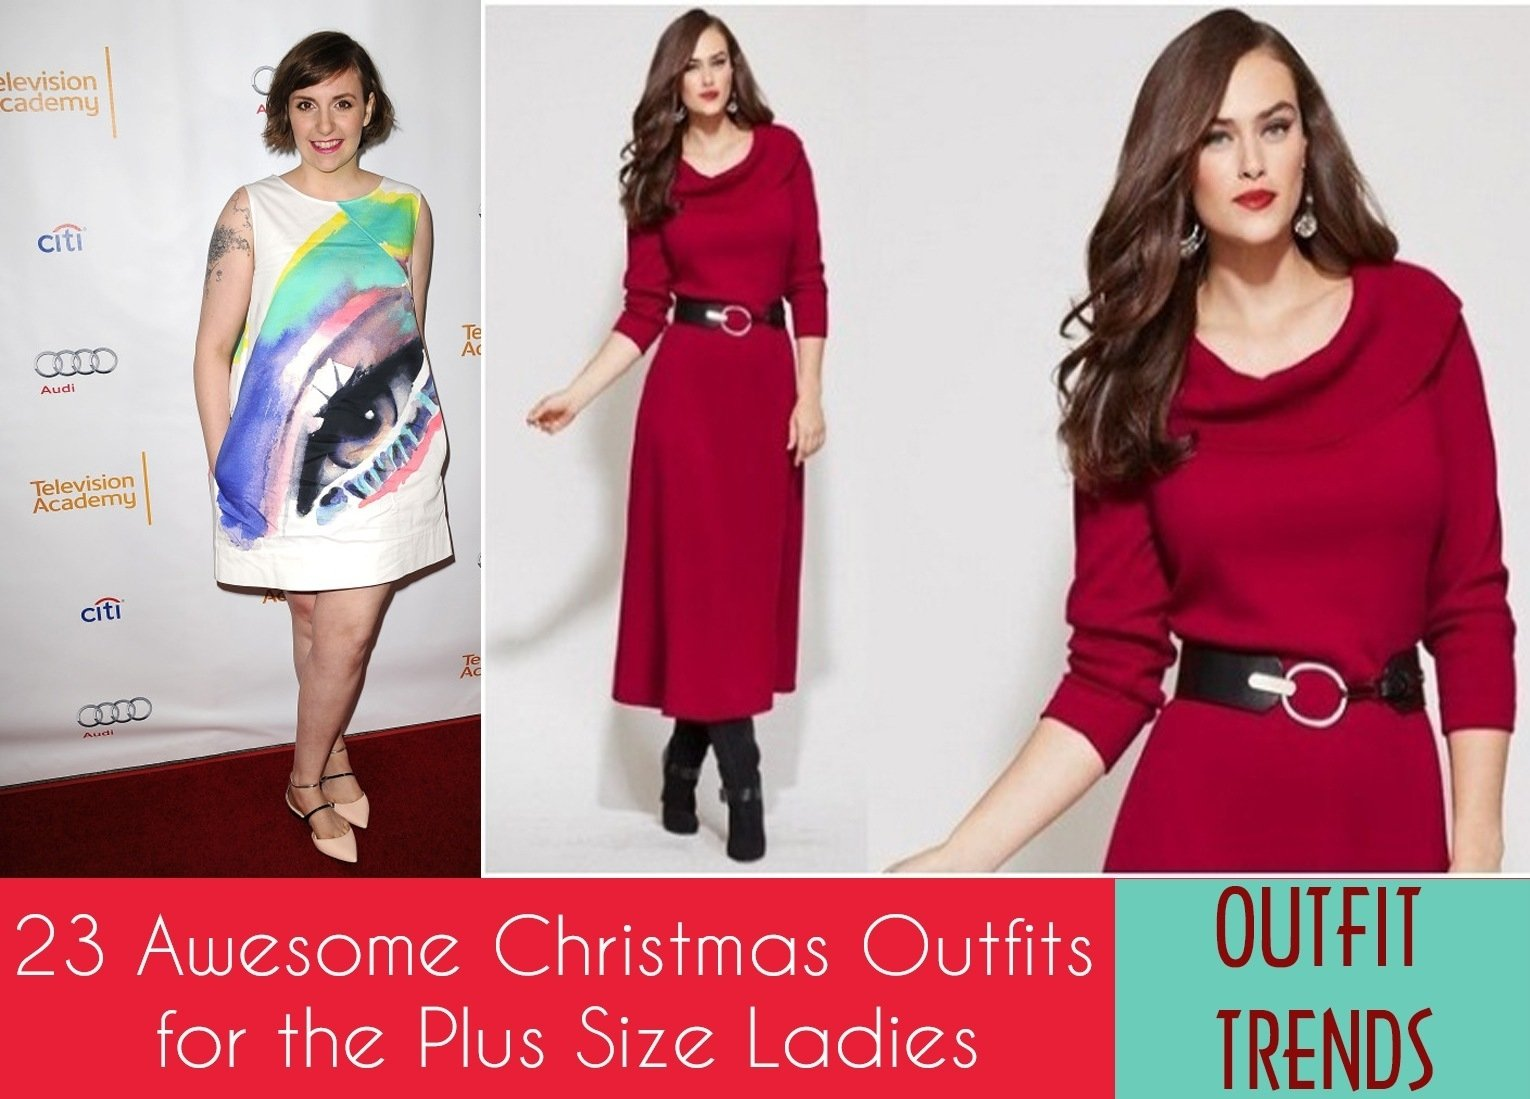 10 Famous Christmas Outfits For Women Ideas 2018 christmas outfits for plus size women 23 party wear 2021